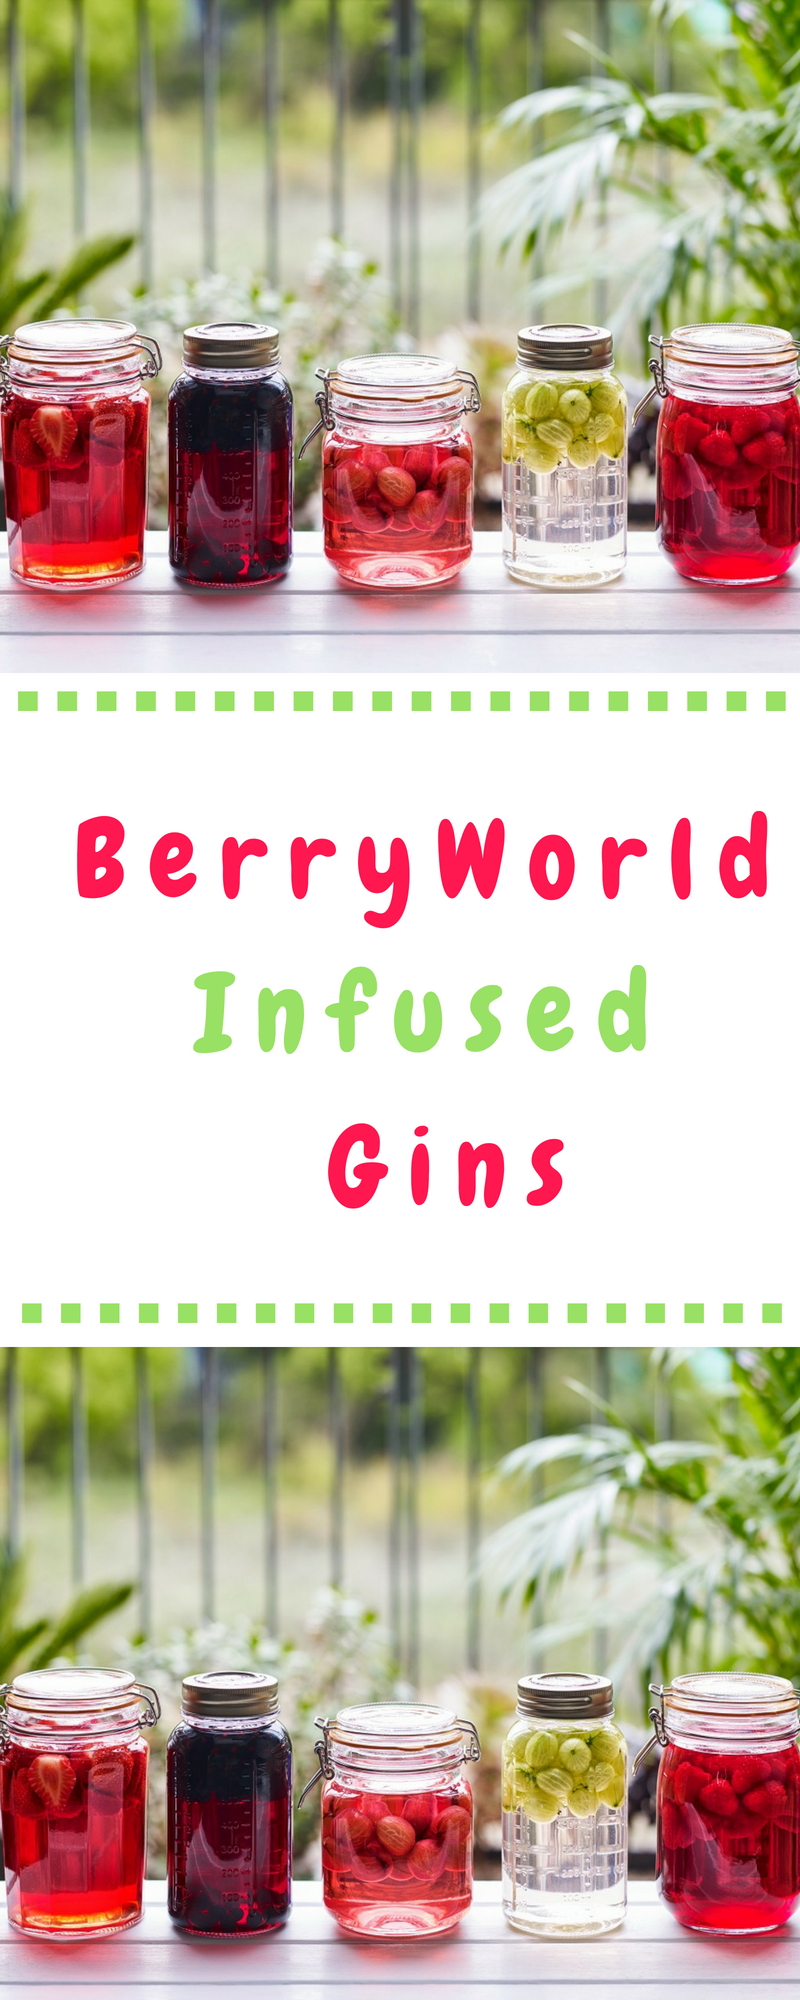 BerryWorld Infused Gins